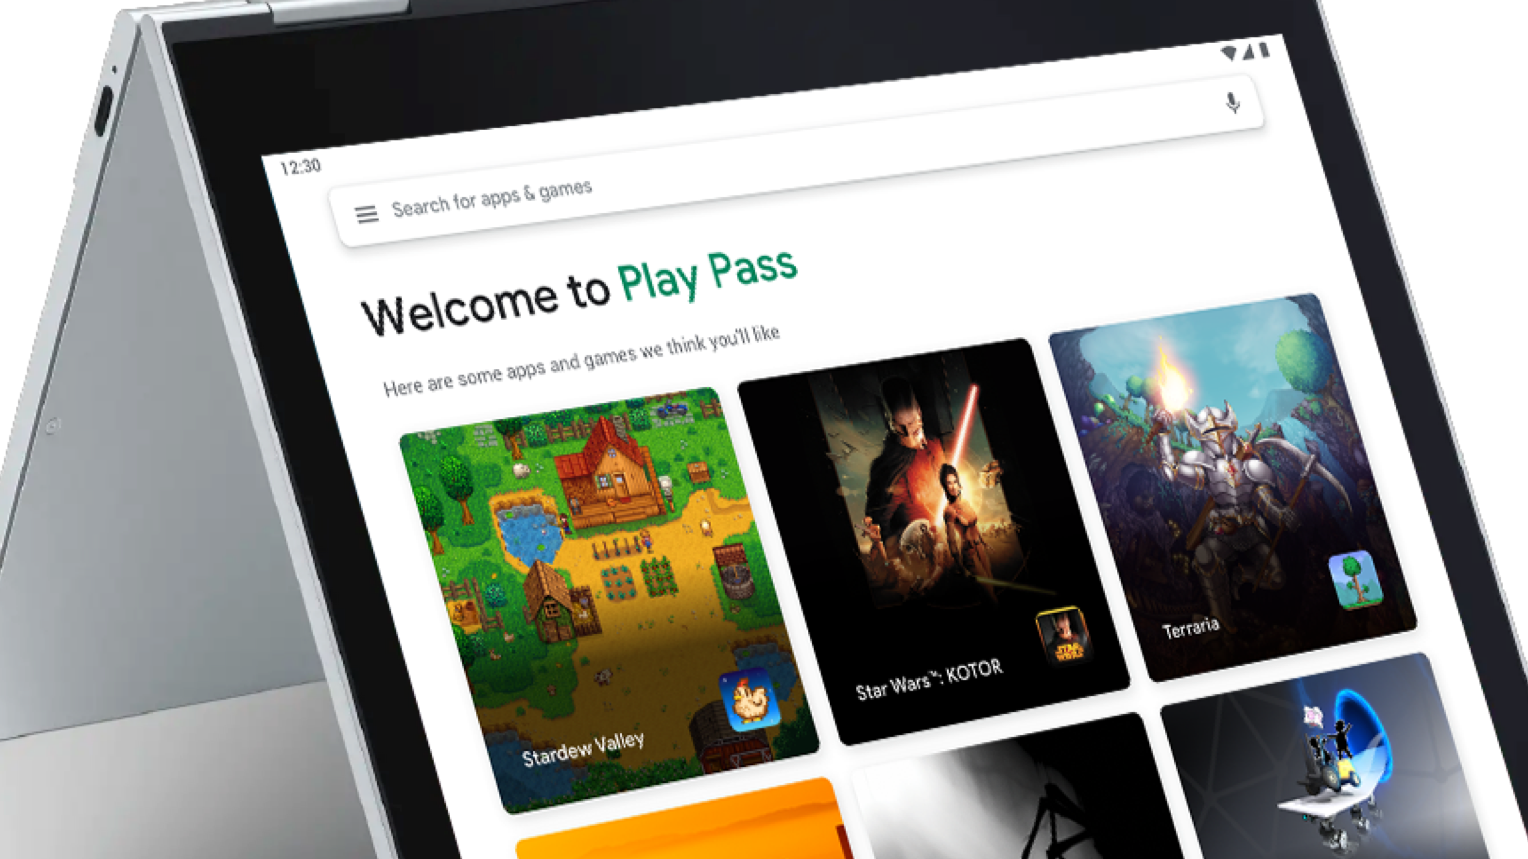 Where To Find The Full List Apps And Games Included With Google Play Pass